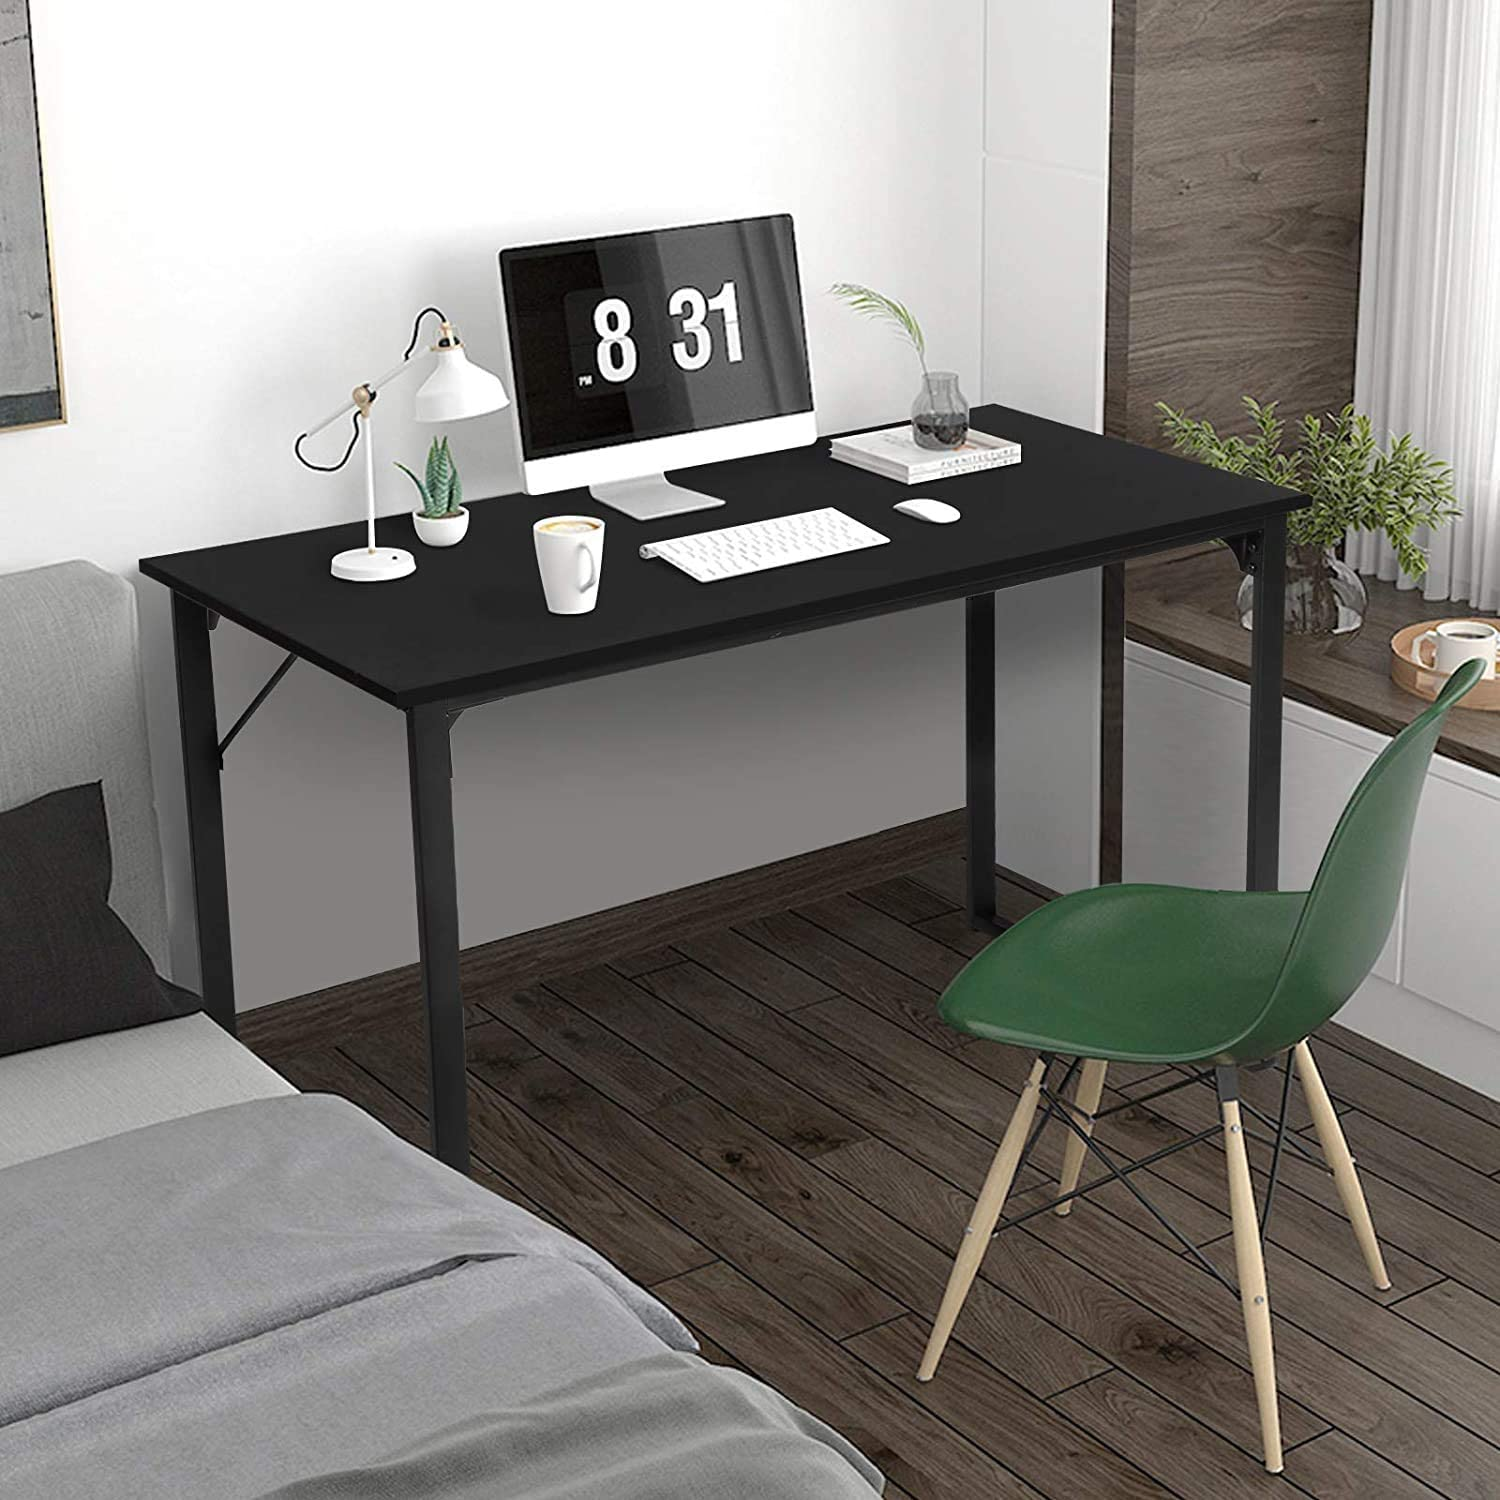 Dining Table Rectangular Kitchen Table Computer Desk Dinner Tables for Small Spaces Dinning Living Room Farmhouse Home Office with Adjustable Footpad